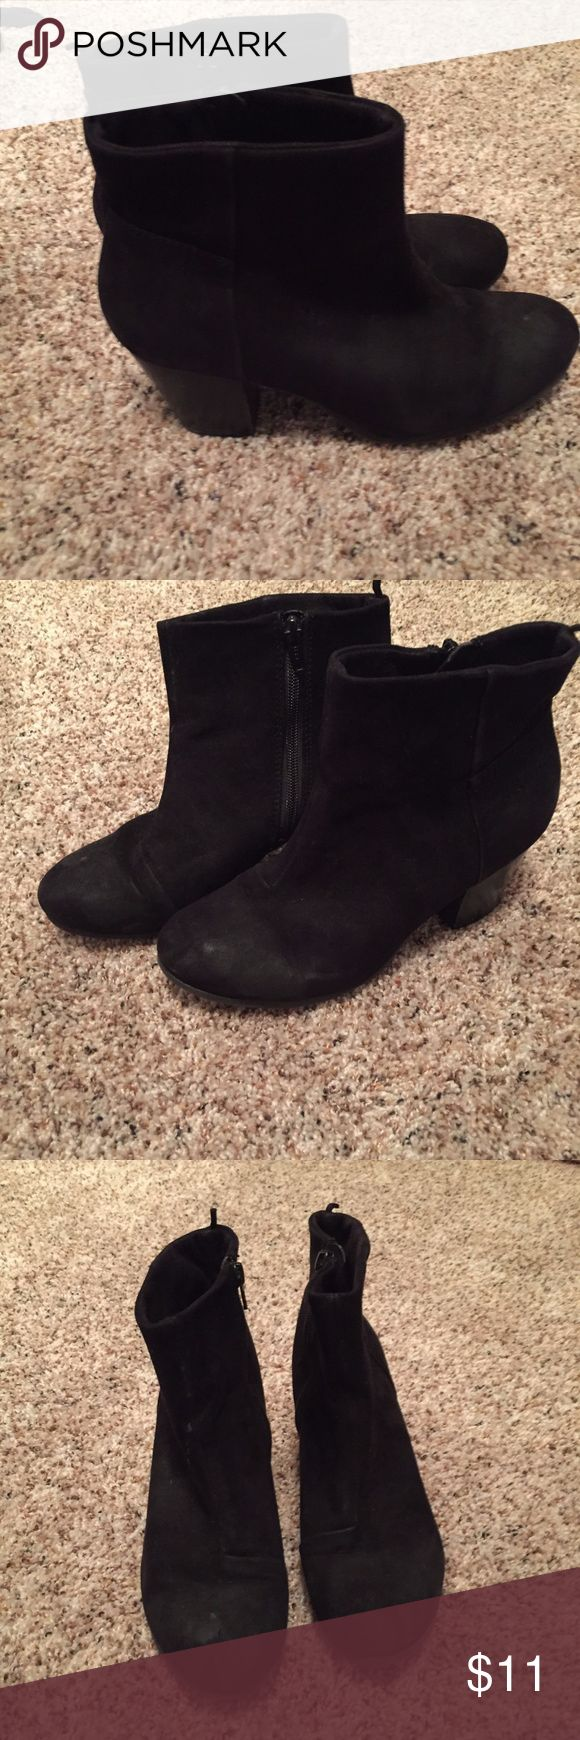 Suede Booties Old Navy Old Nacy Black Suede Boots  Heels are also boots  about 3 inches heel  Zipps on the side  Heels have a lot of scuff marks on them   ❌No Trades ✔️Offers Accepted $ Bundle and Save Old Navy Shoes Ankle Boots & Booties